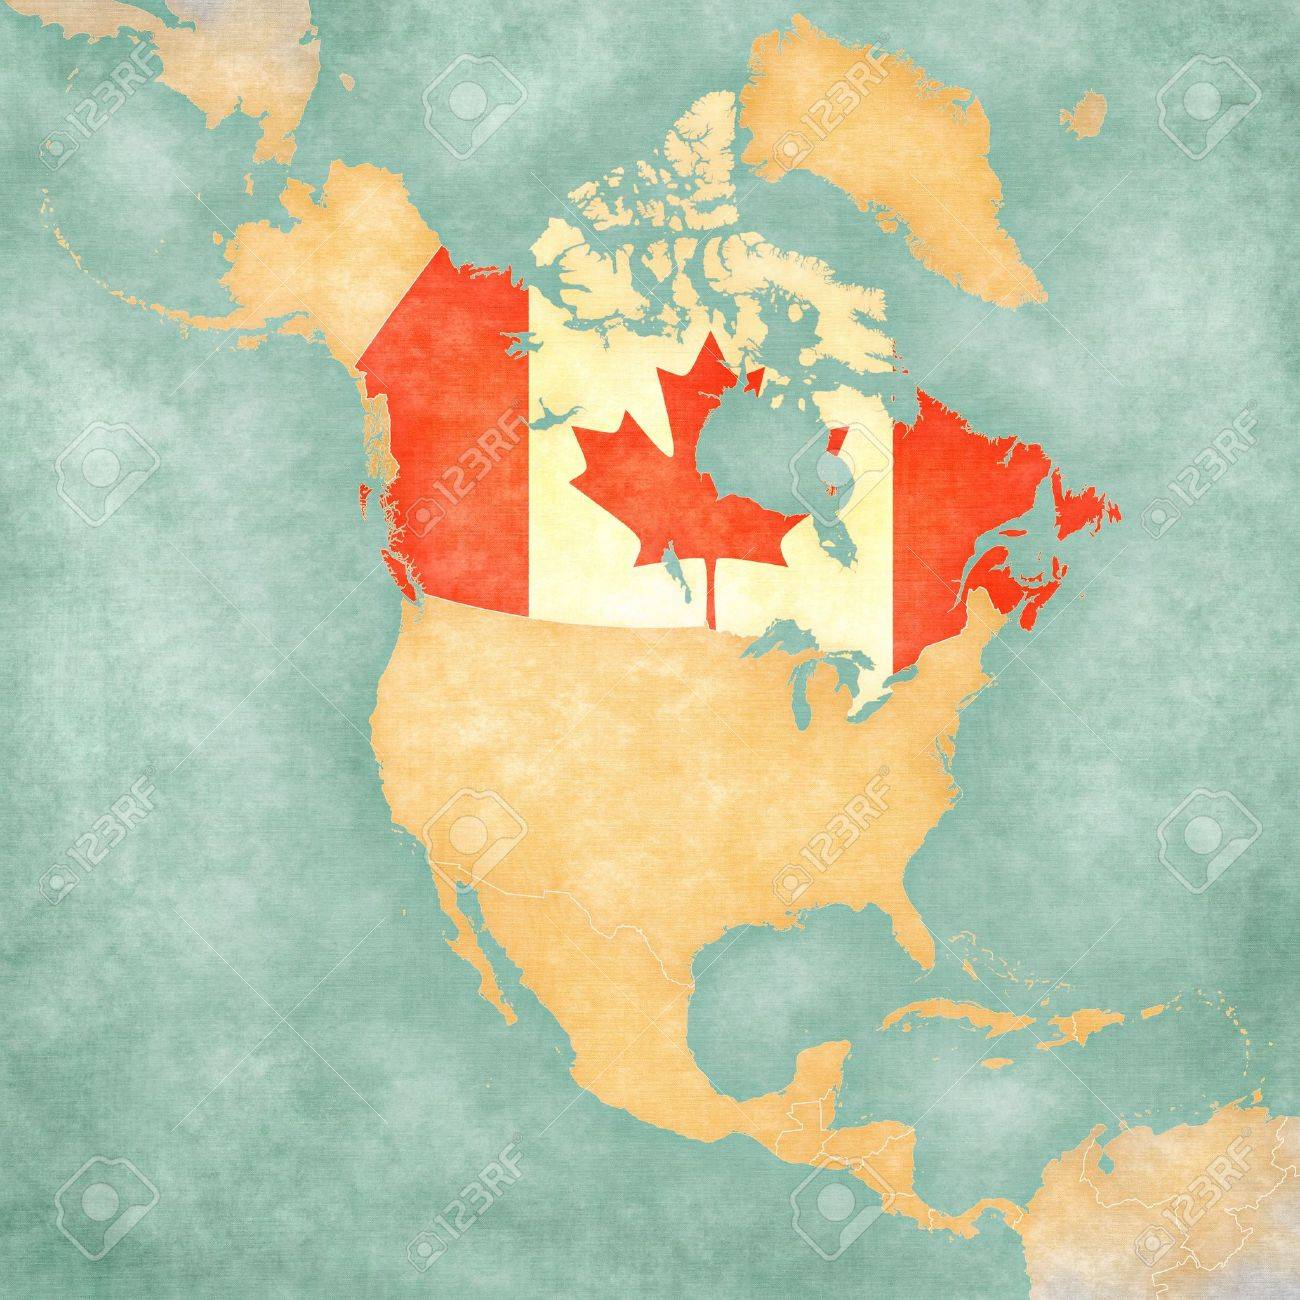 Canada Canadian flag on the outline map of North America The..